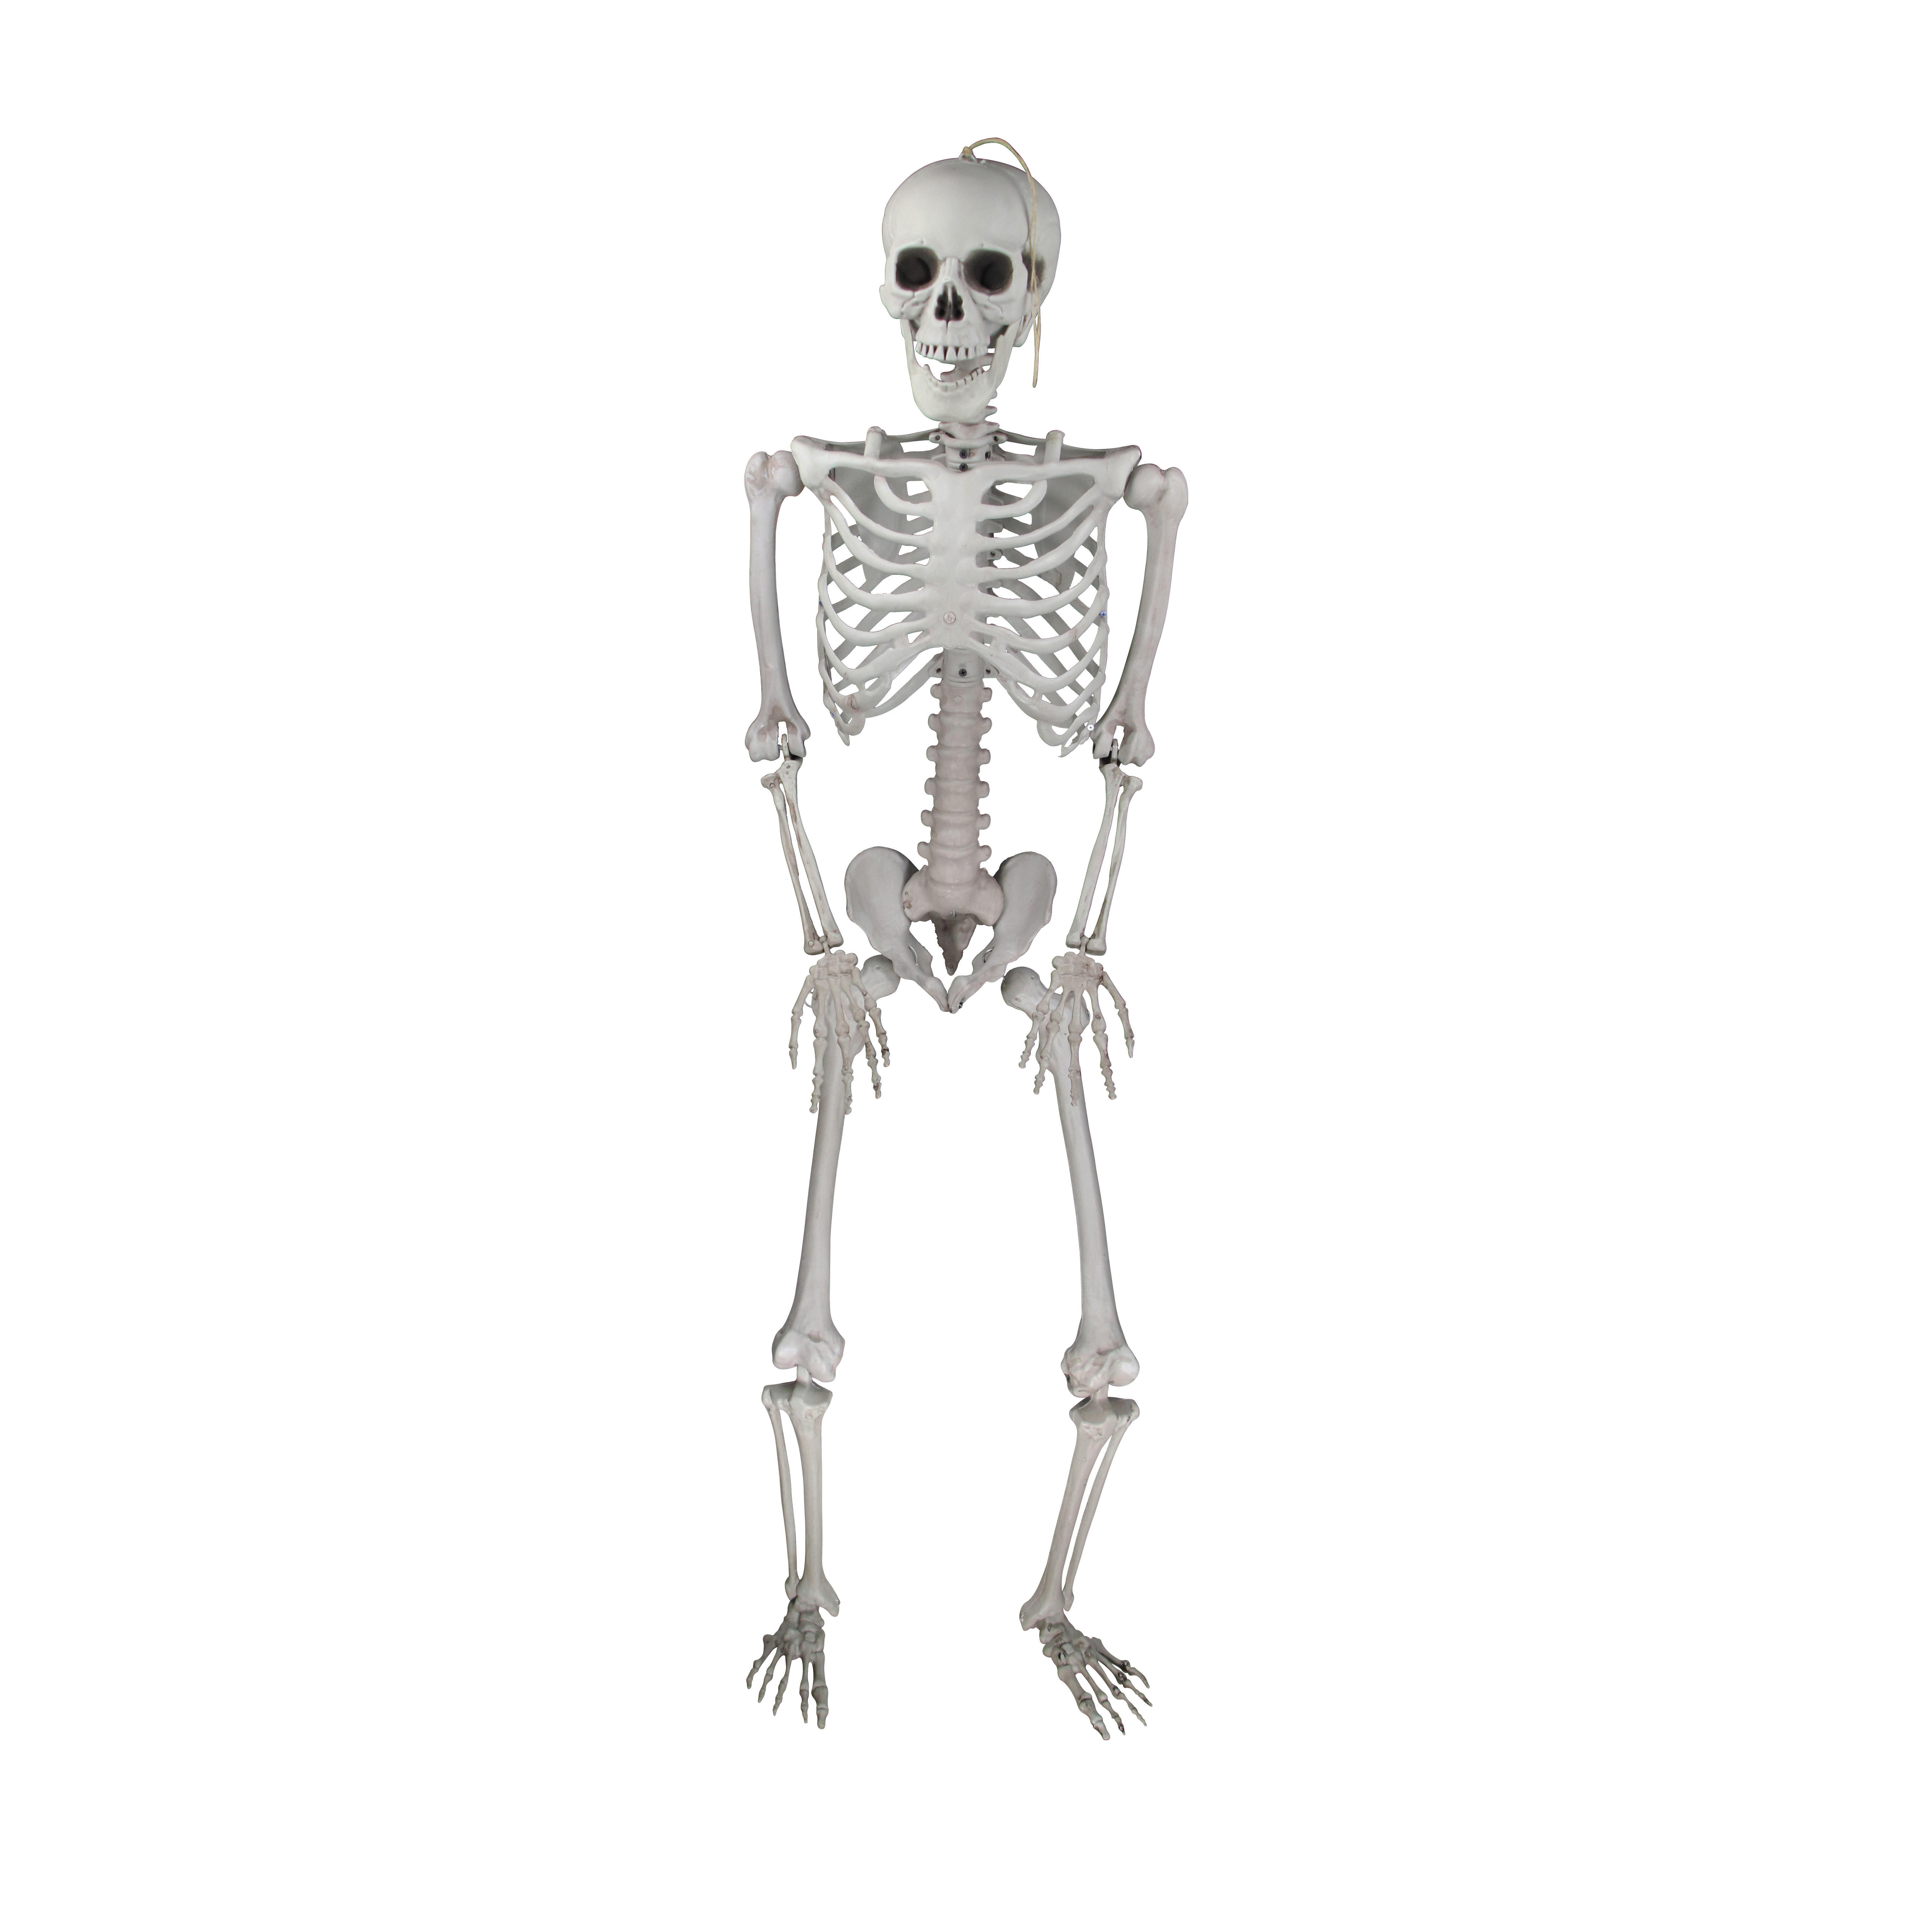 Molezu Halloween Skeleton Prop Plastic Adult Size Jointed Body skeleton Horror Haunted House Decoration Prop